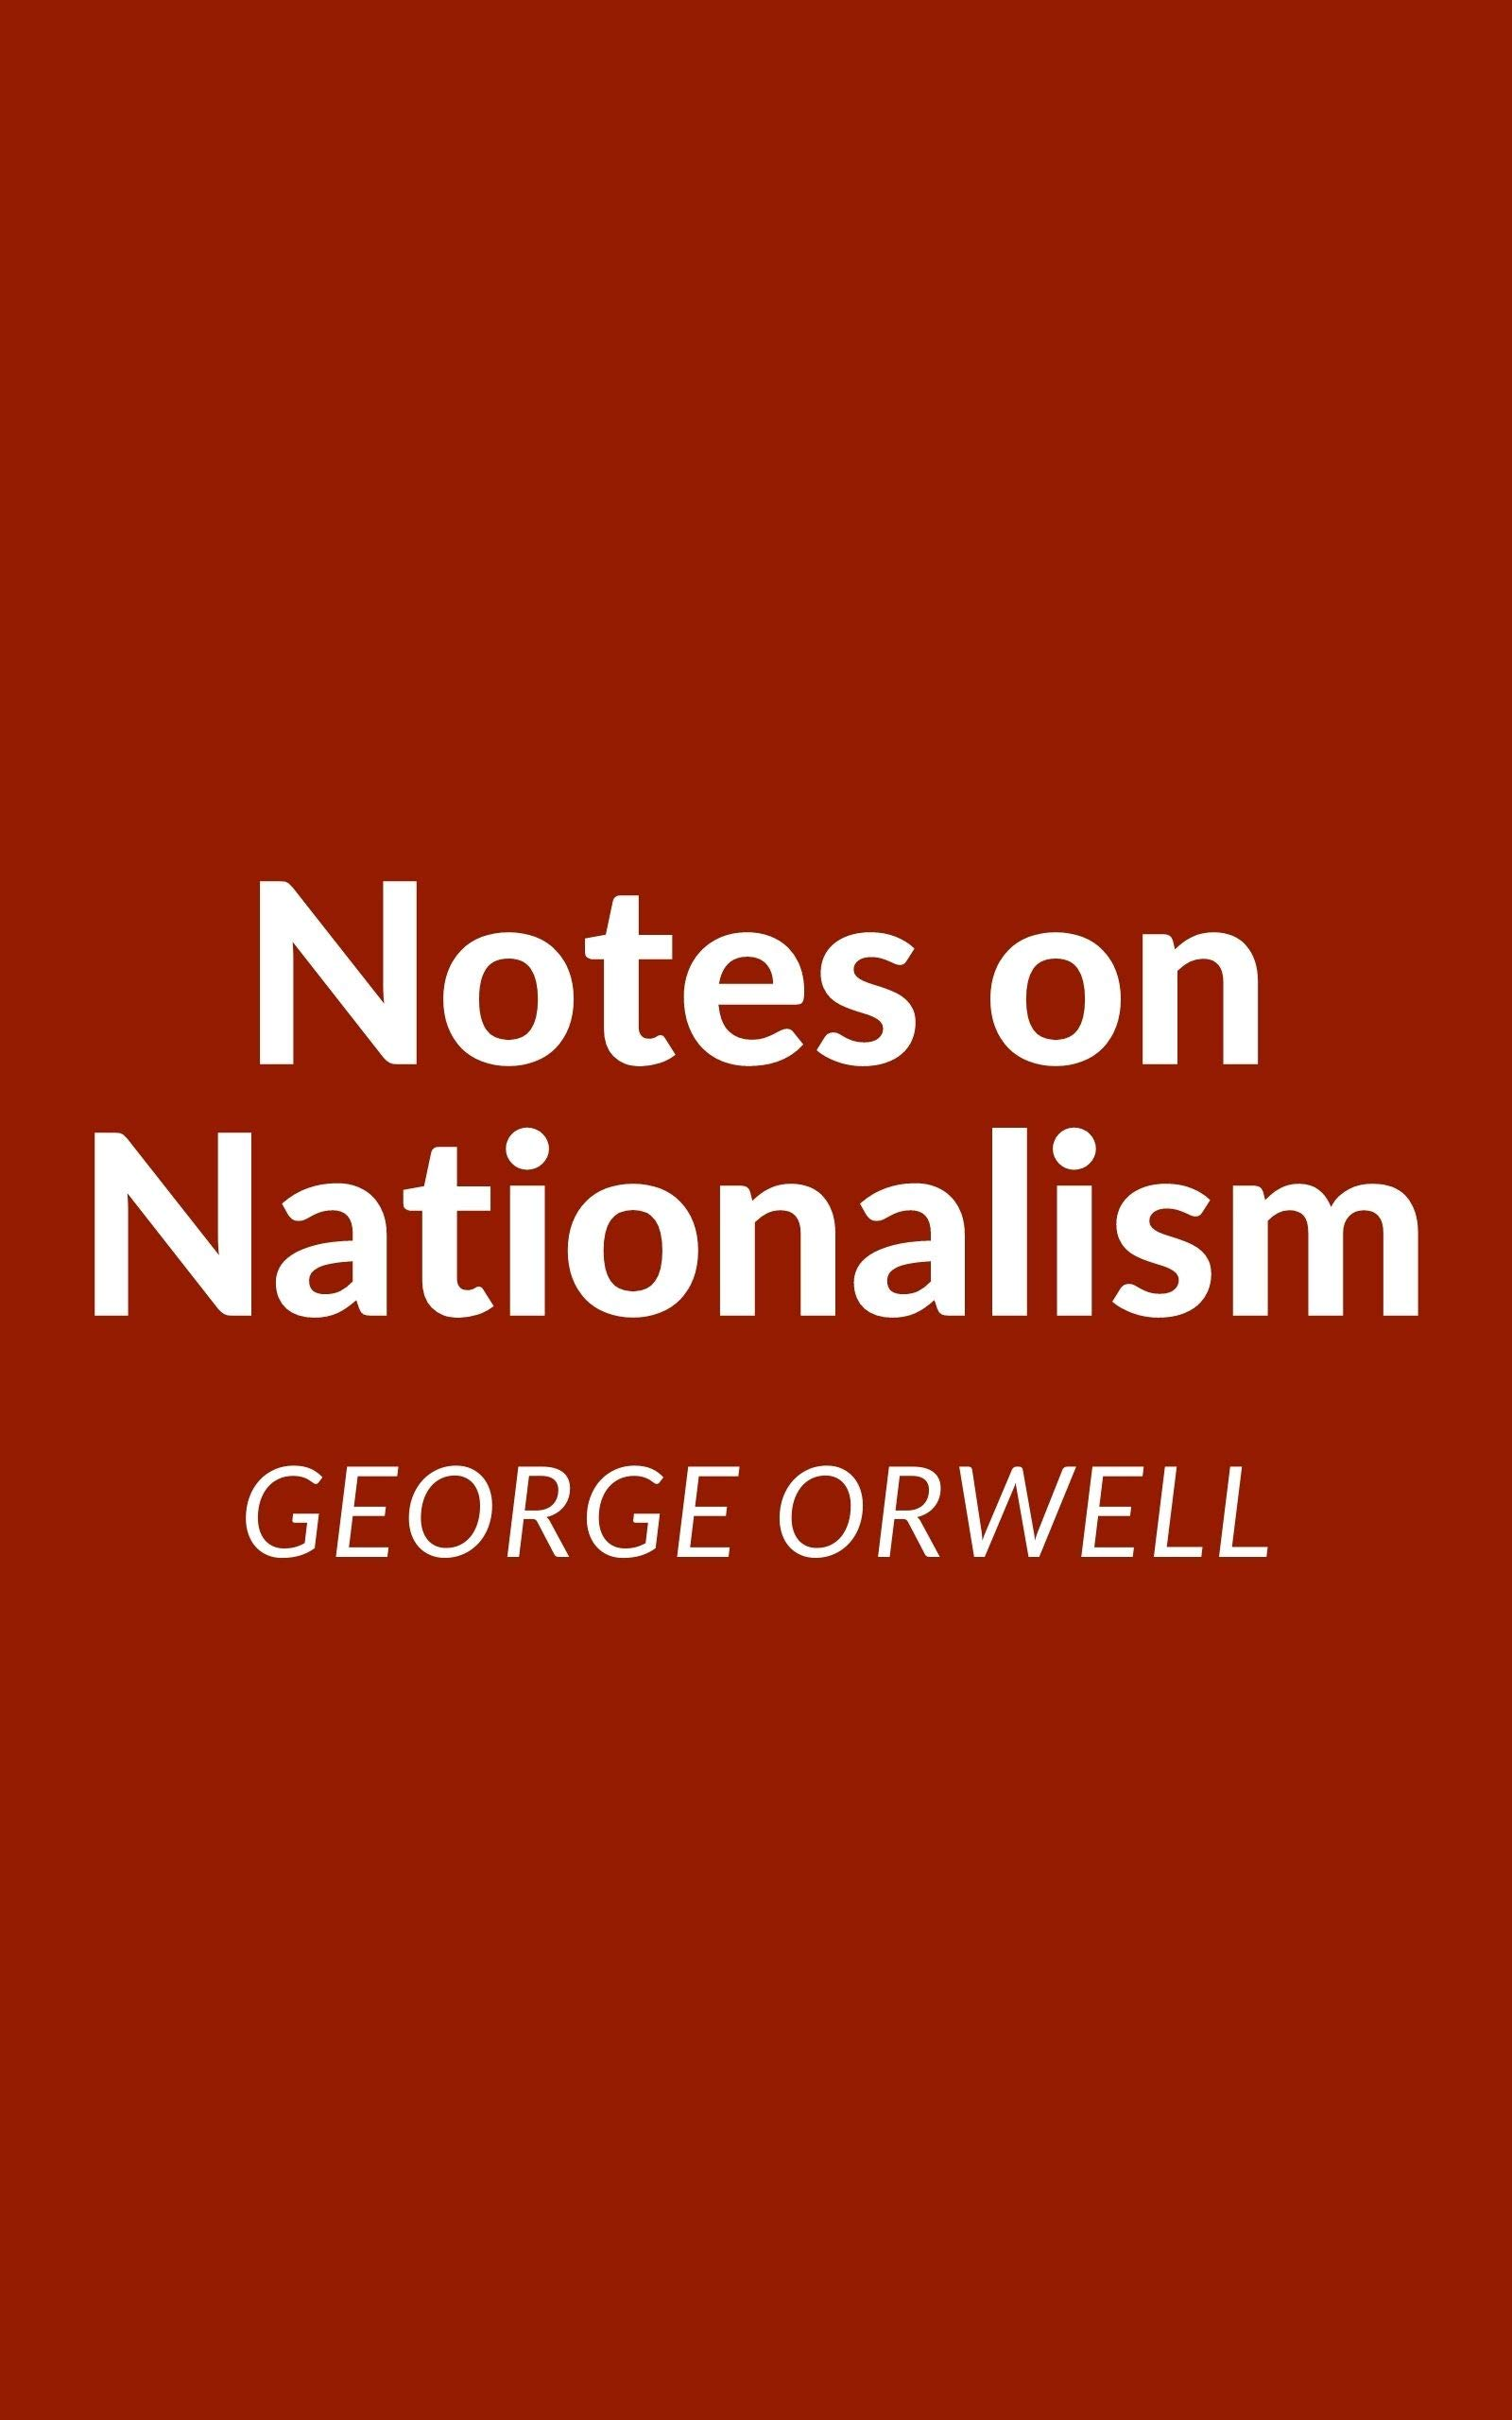 Notes on Nationalism: A George Orwell Essay